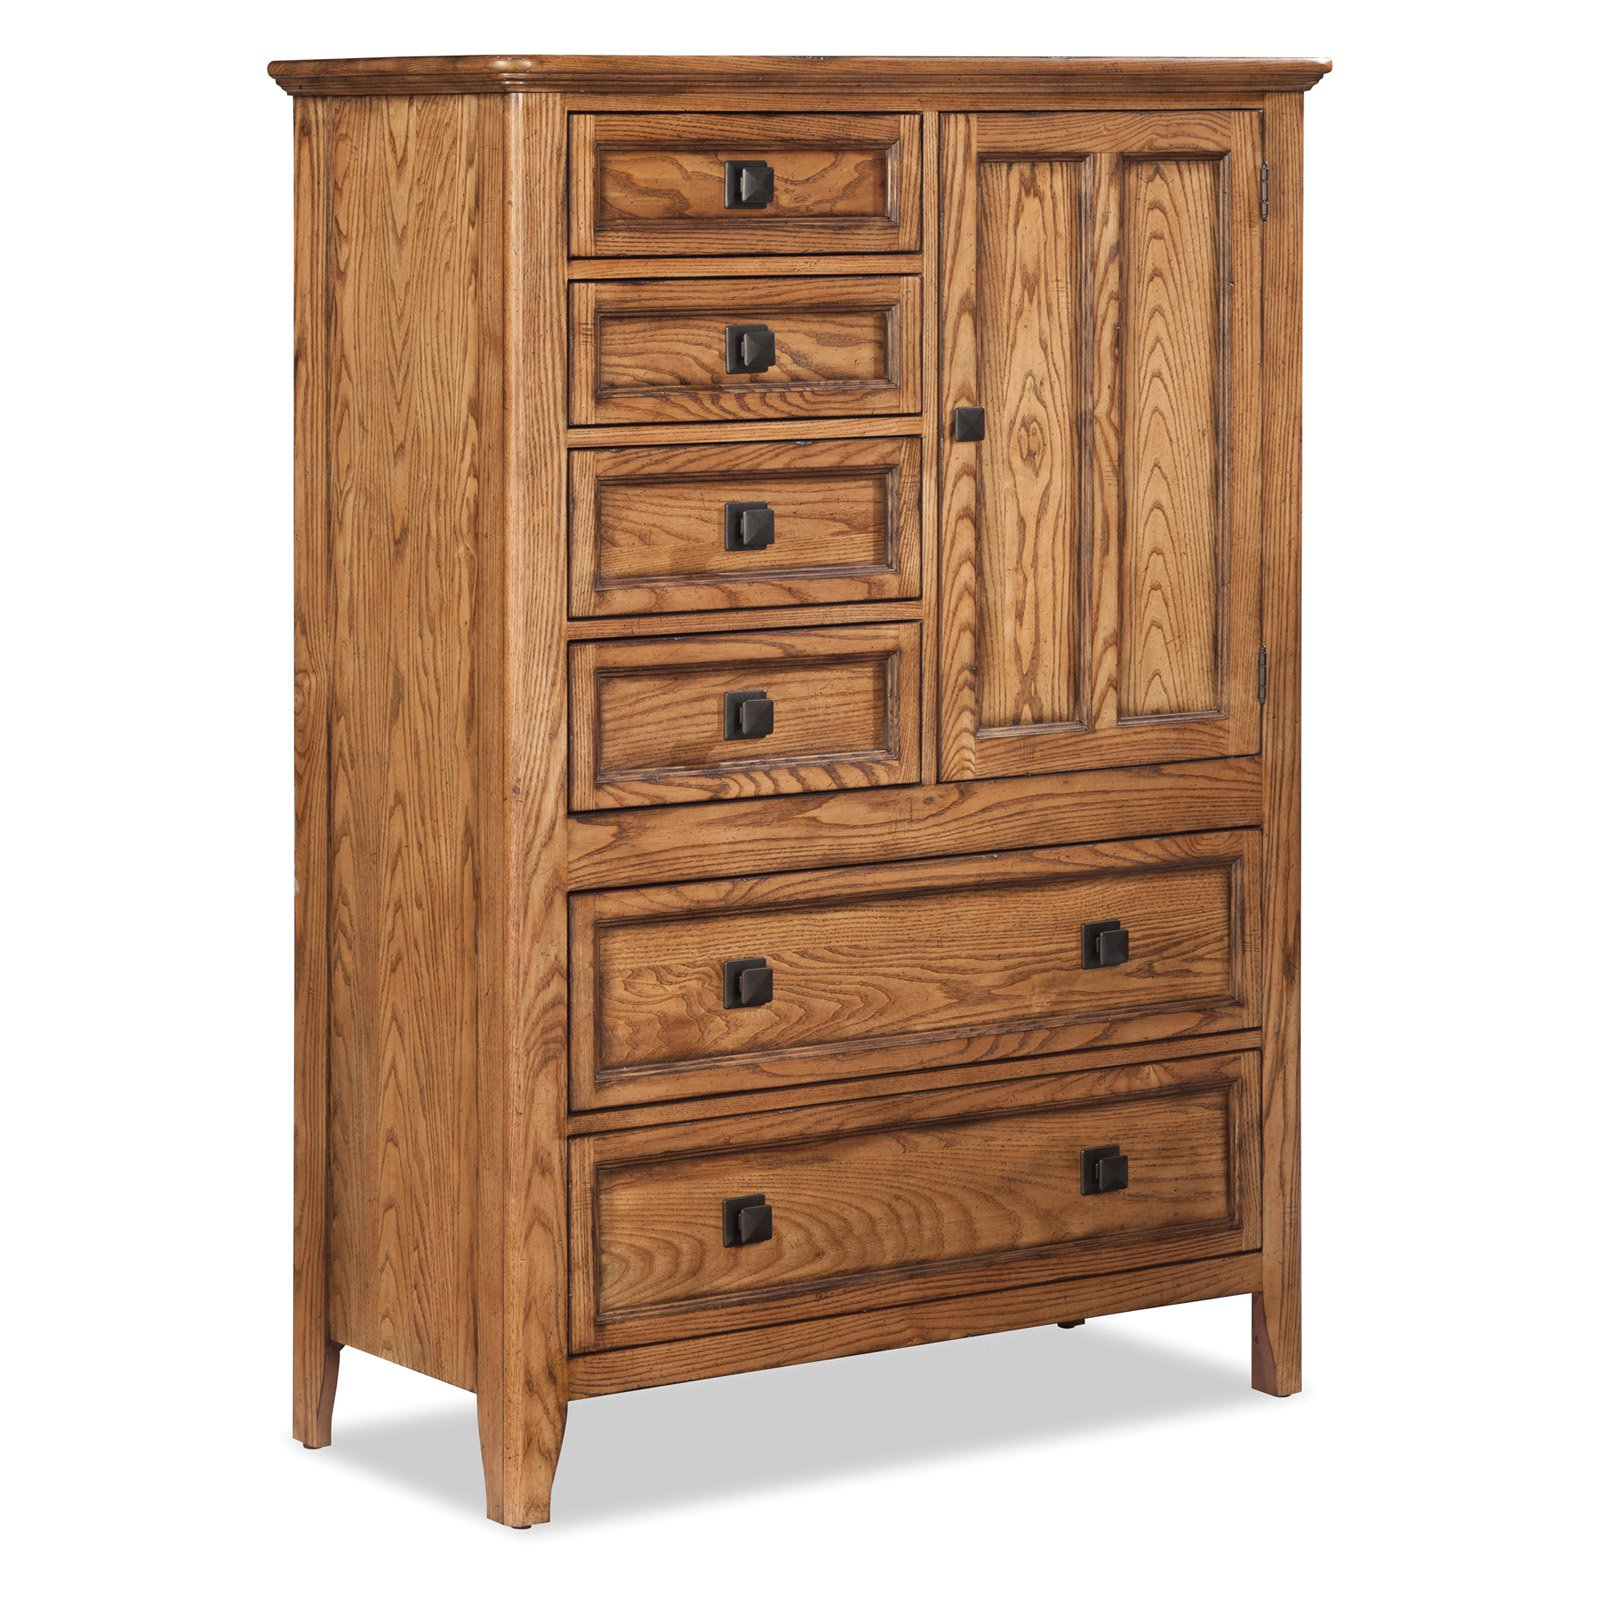 Imagio Home Alta 6 Drawer Chest with Door